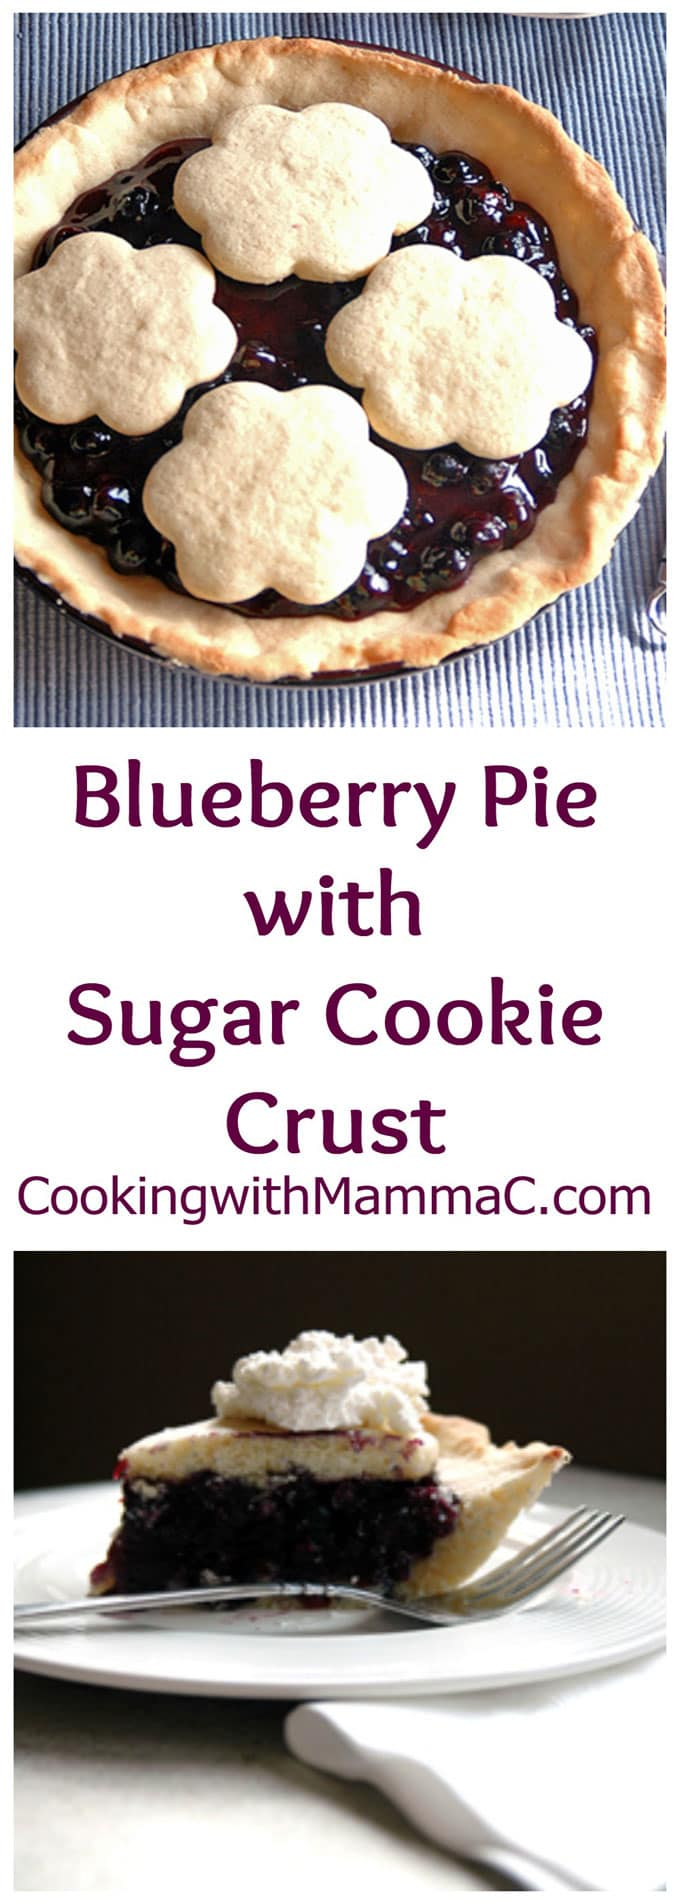 Blueberry Pie with Sugar Cookie Crust is our favorite summer dessert! I've been making this for years, and everyone loves it!